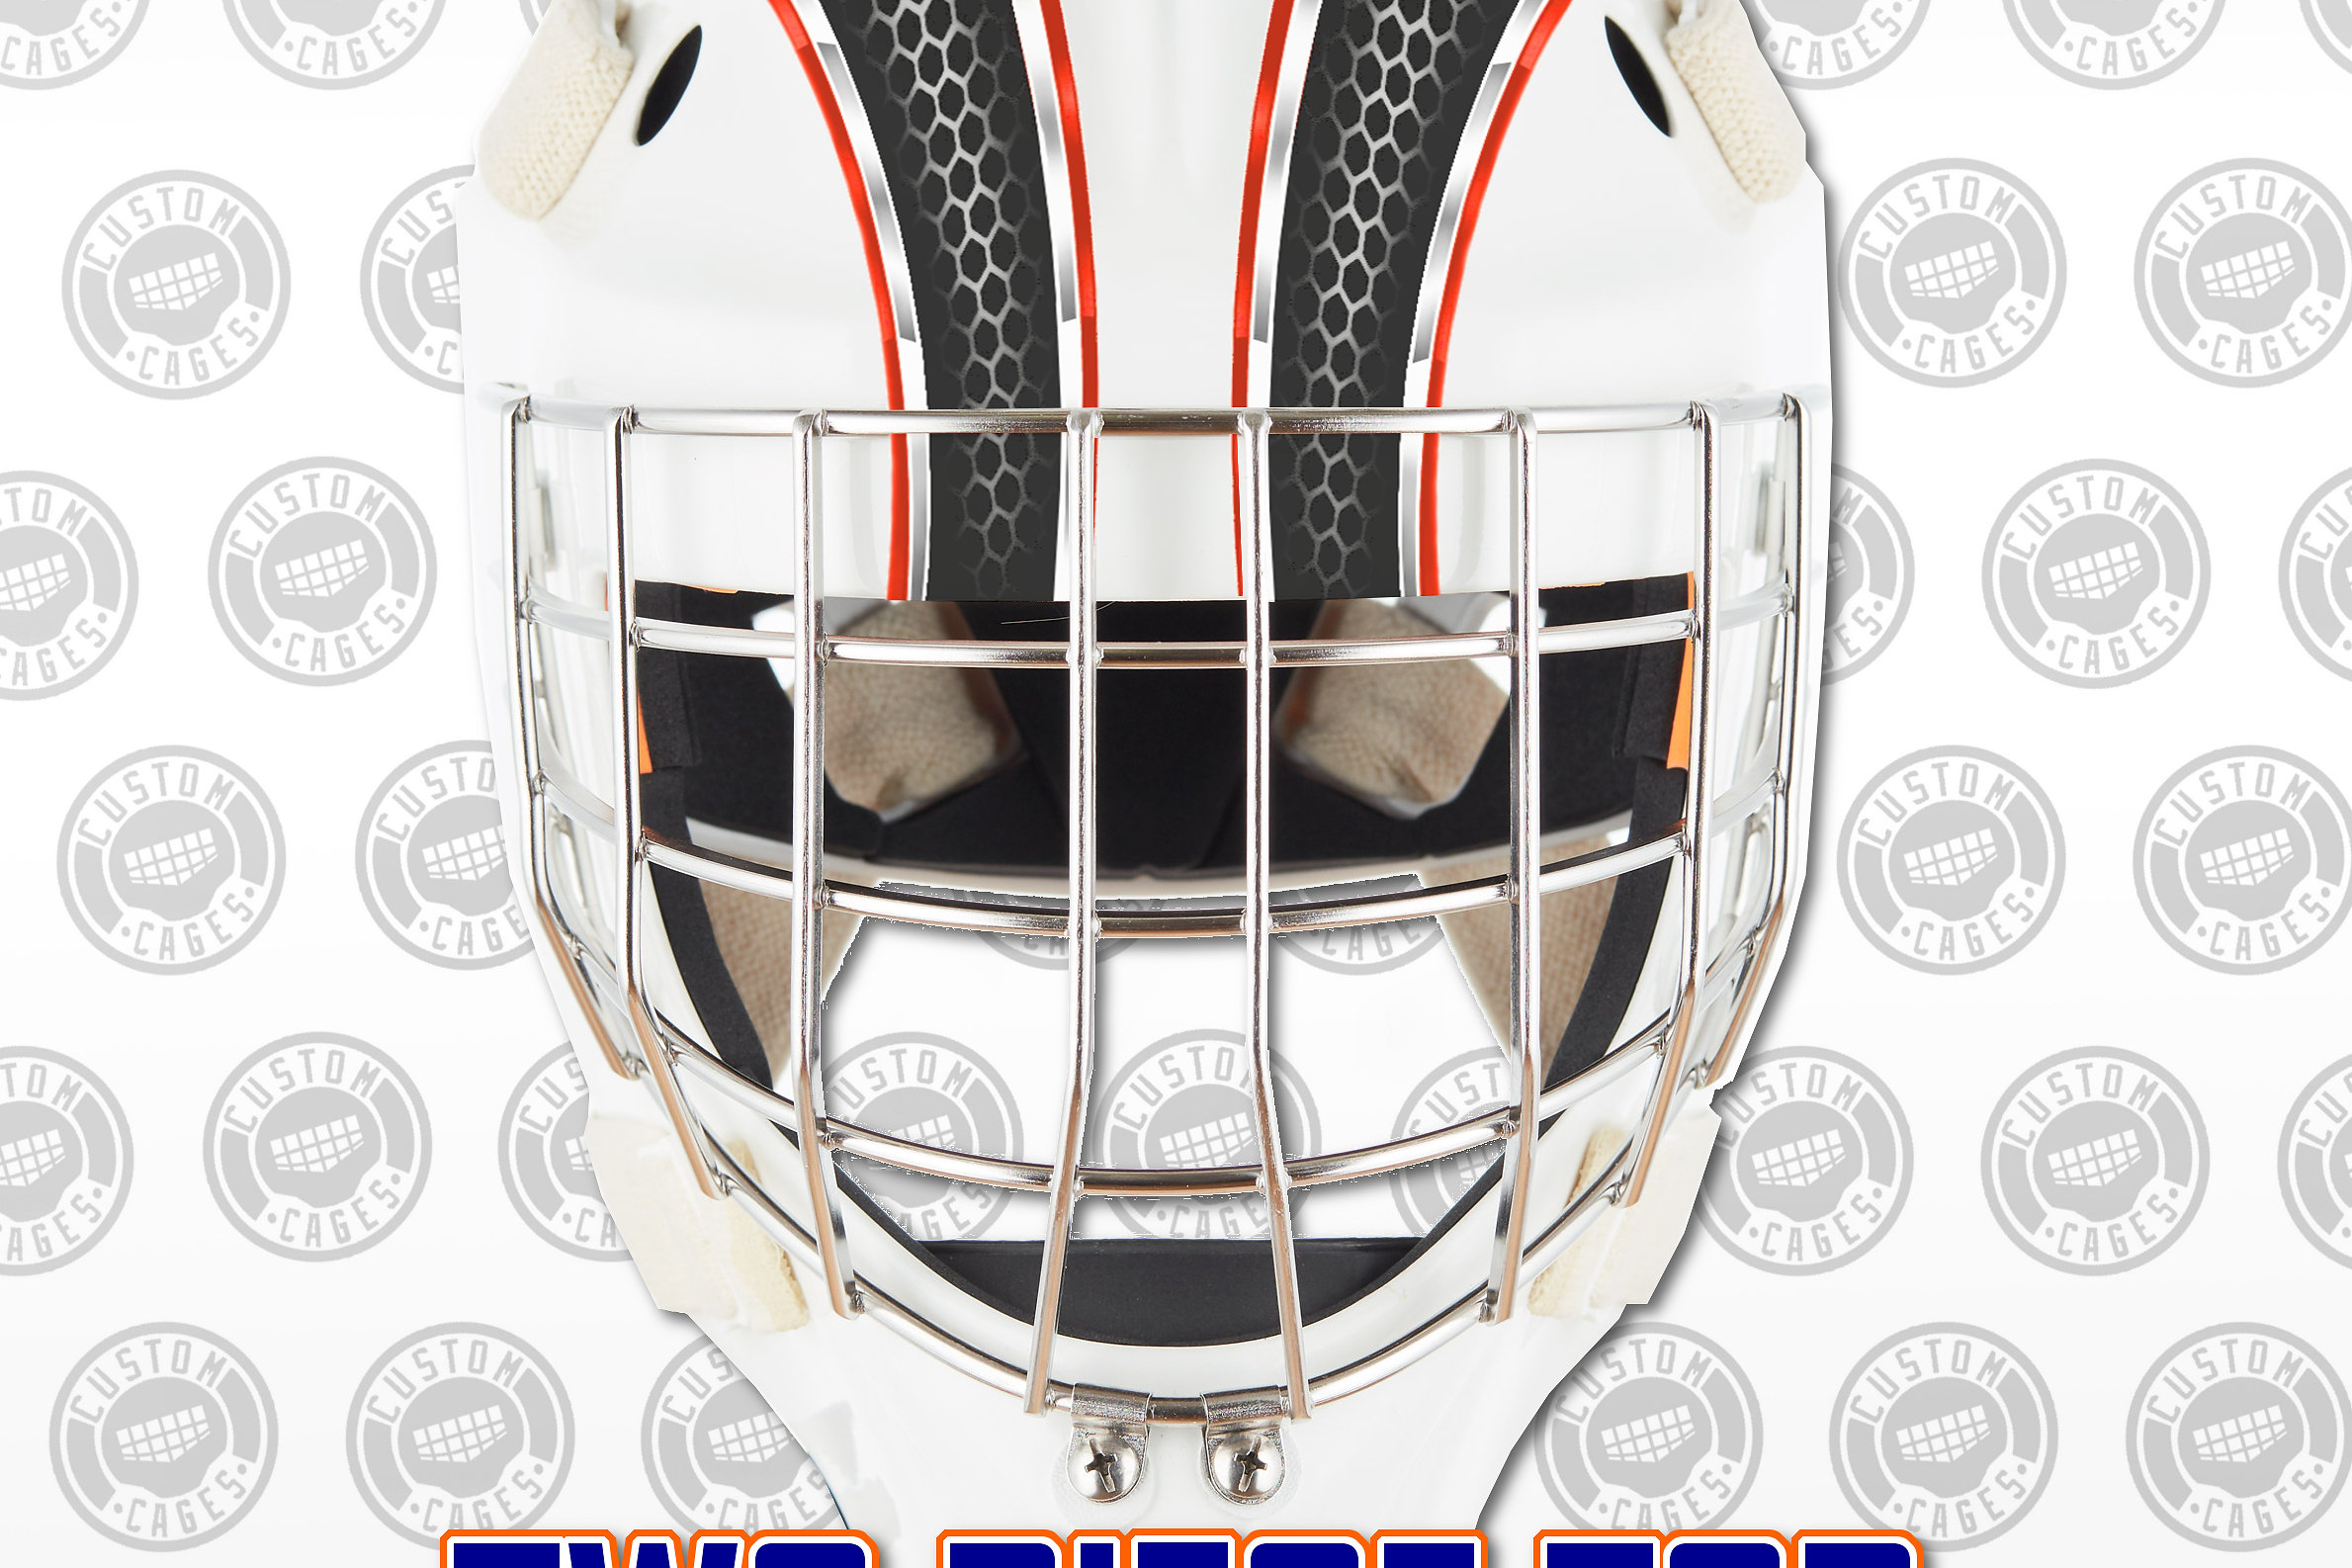 Our goalie mask decals are printed onto a lightweight and flexible vinyl they are waterproof and durable perfect for any exposure to ice or puck ricochet